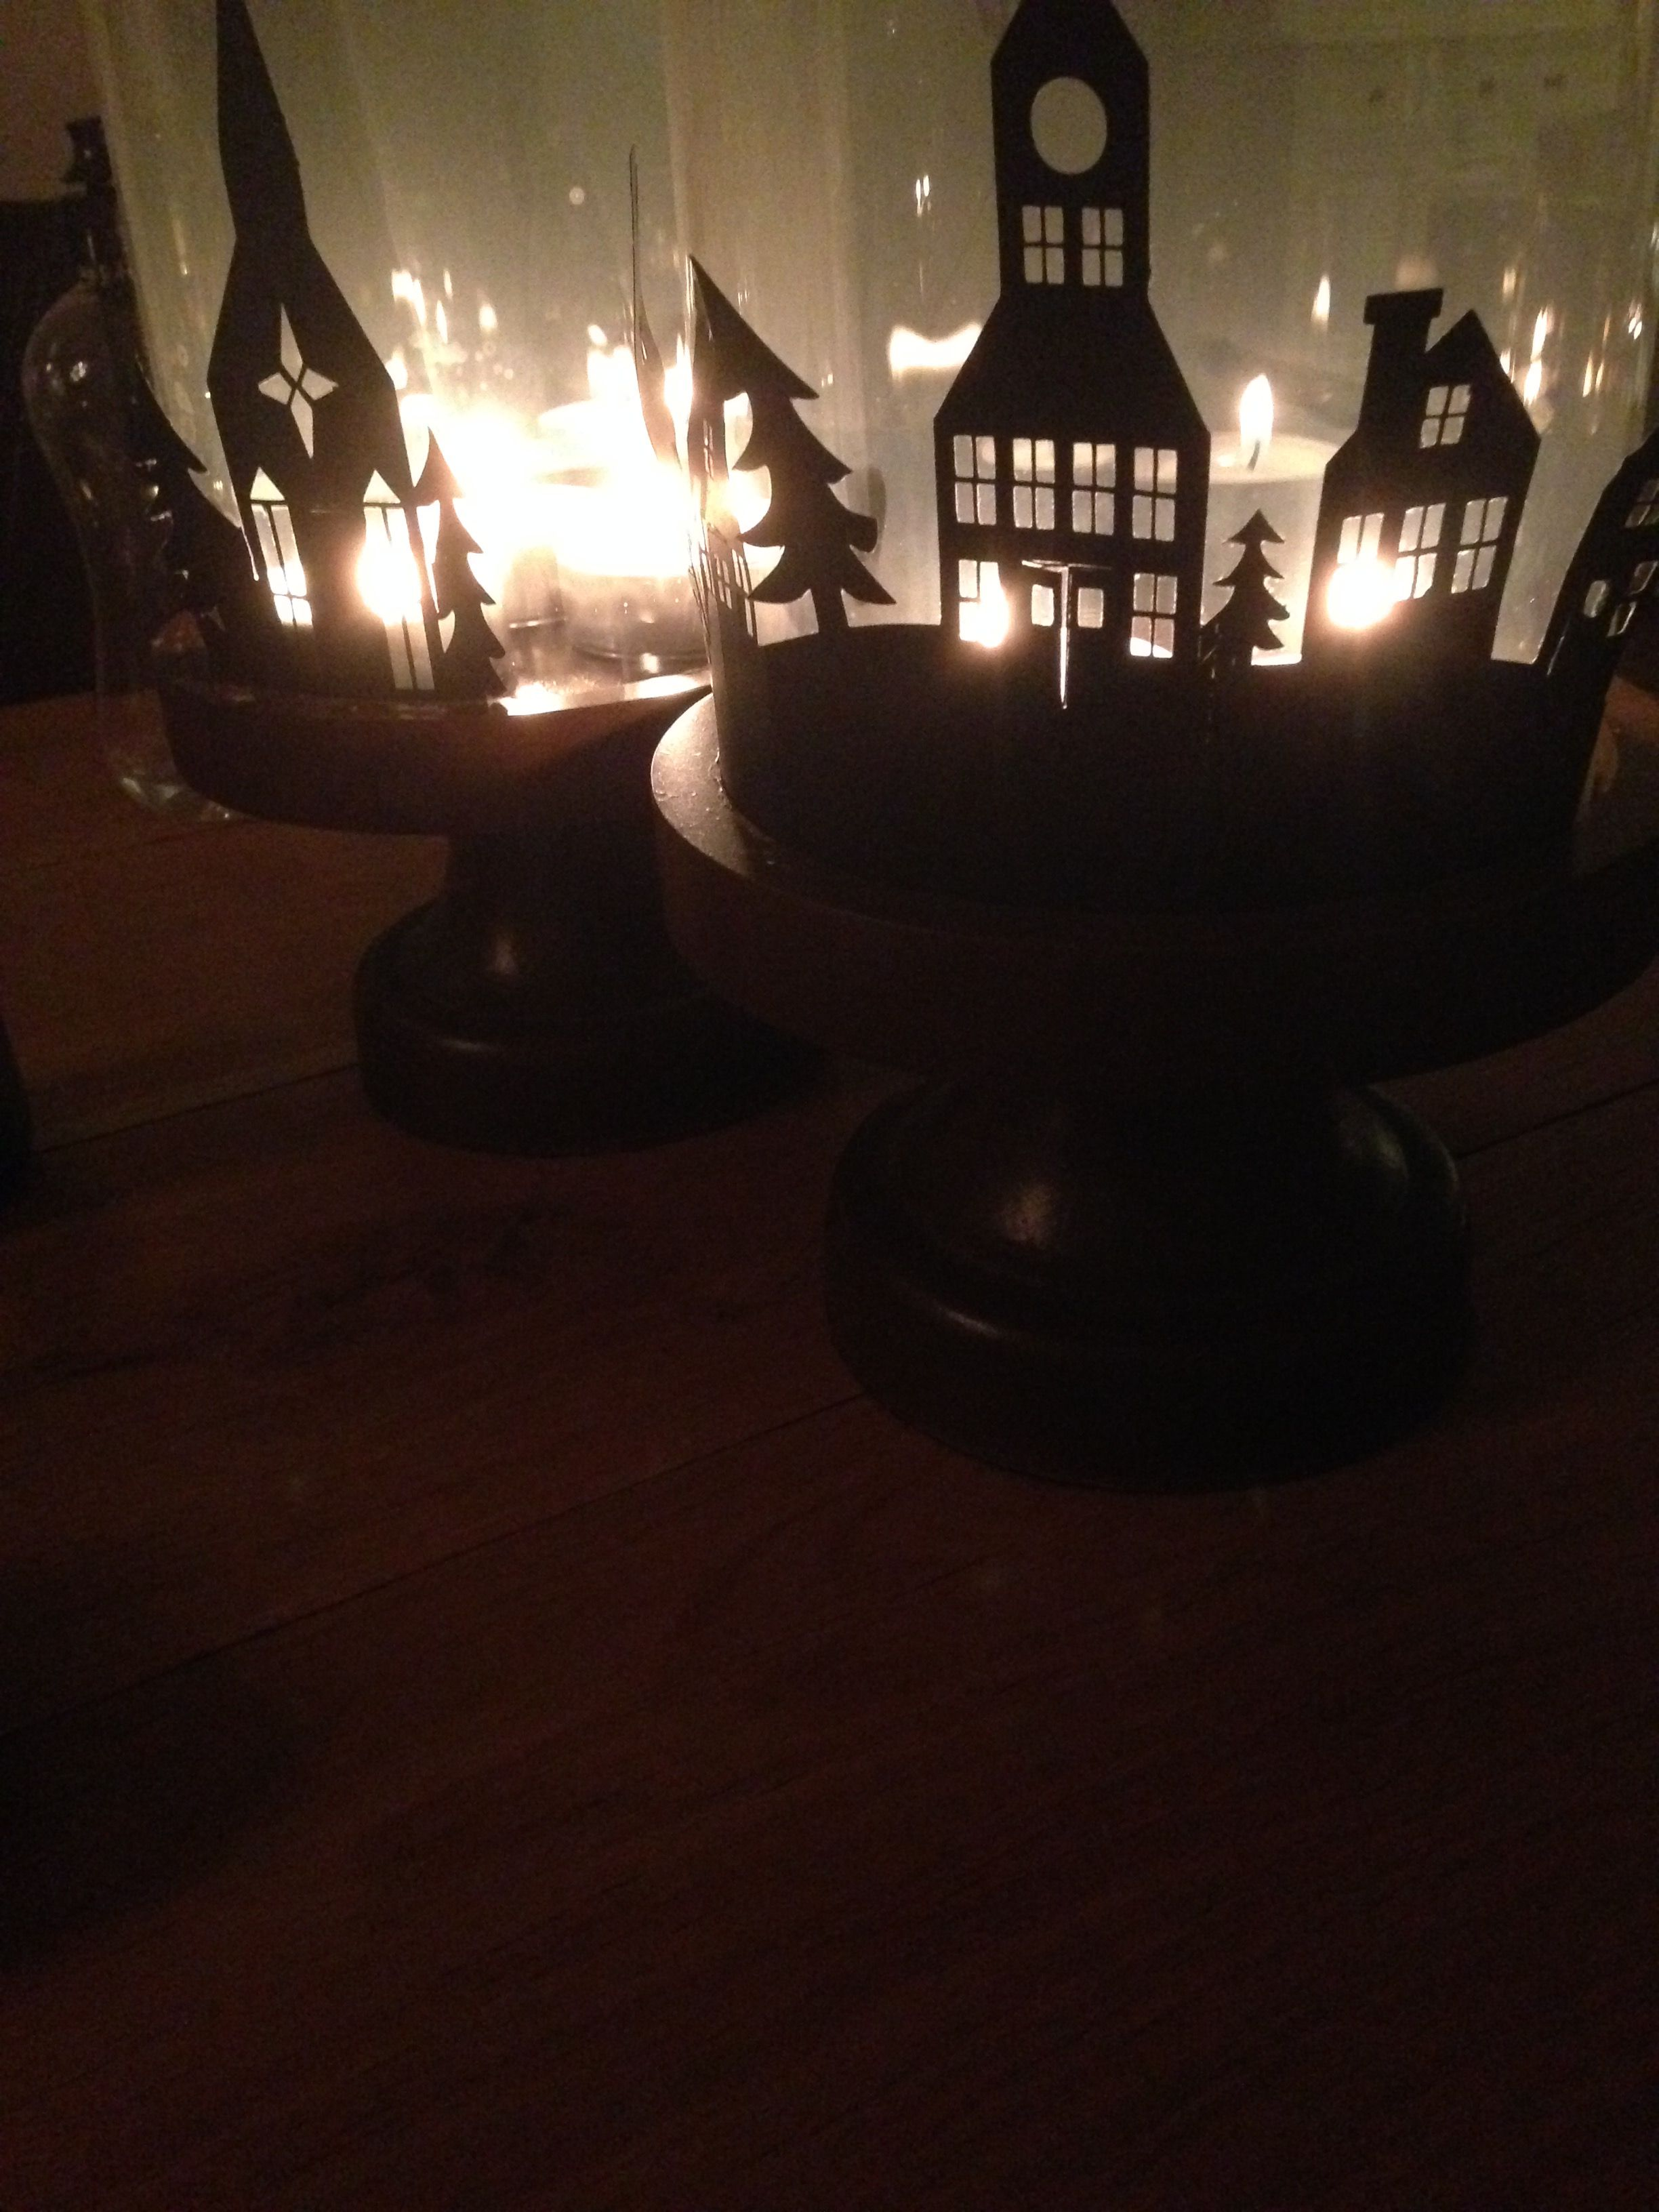 I bought the design at the Silhouette online store and wrapped it around my own candle holders. It's such a lovely touch for this season.